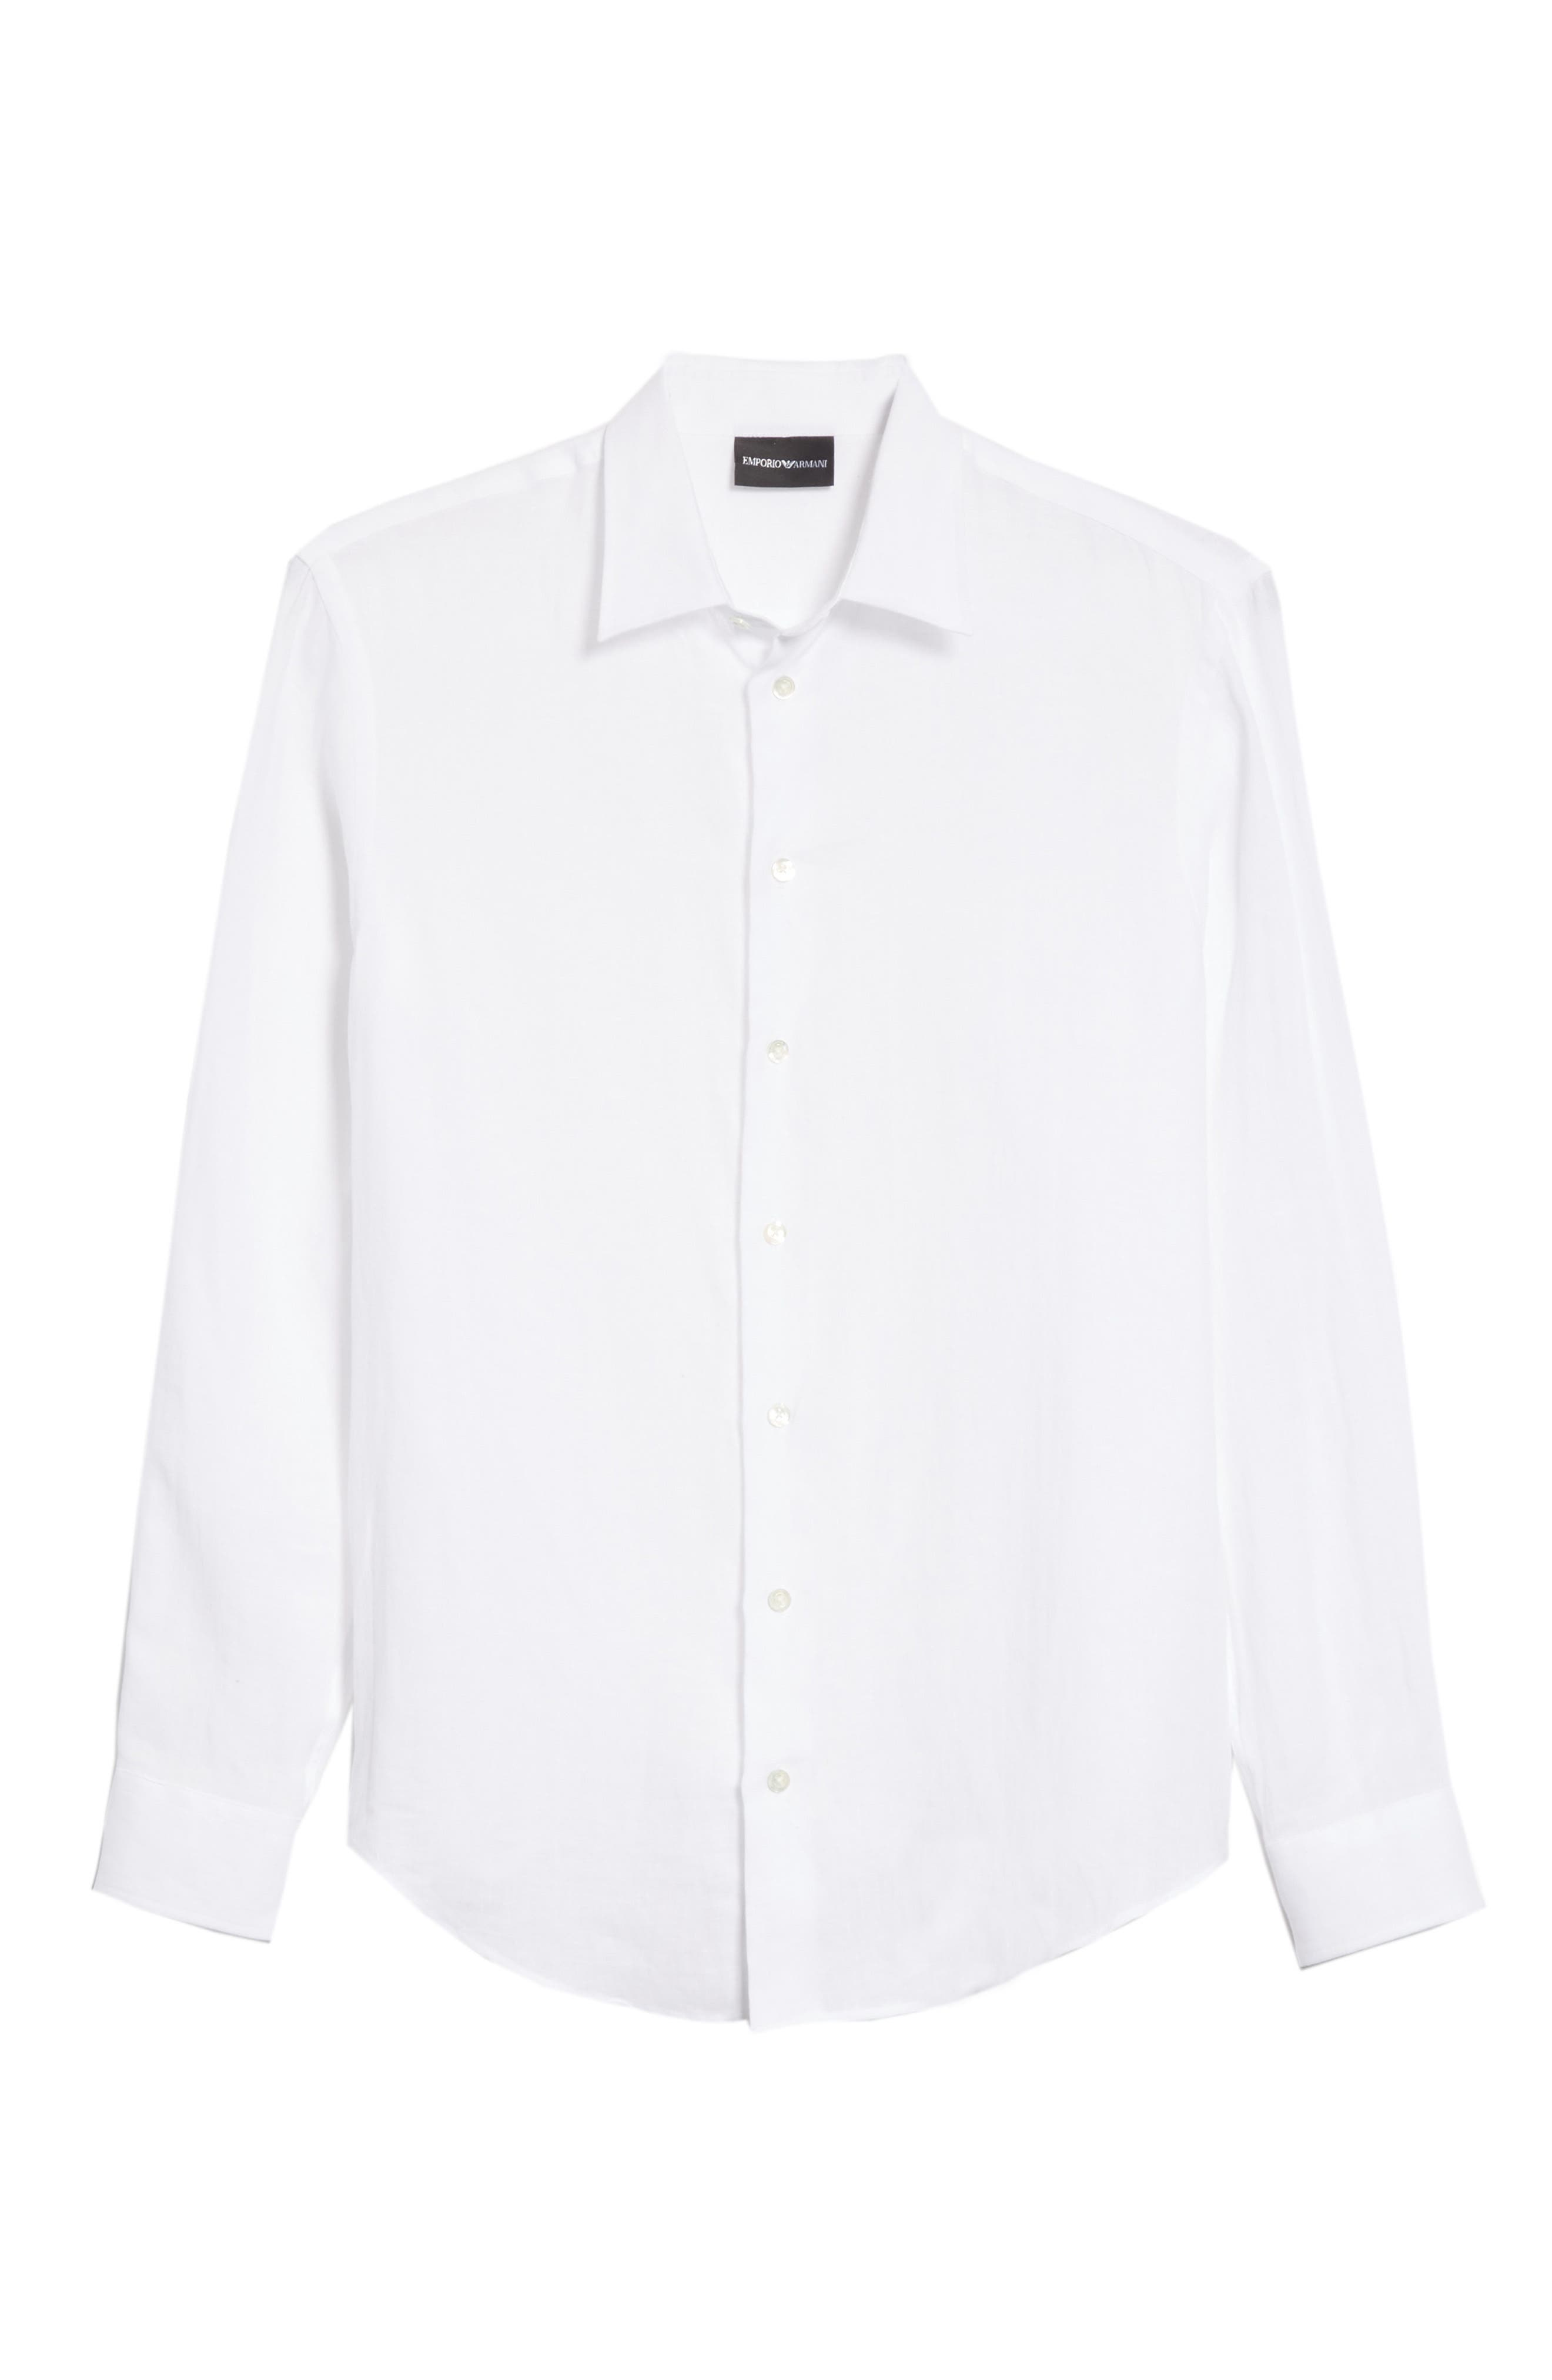 Regular Fit Linen Dress Shirt,                             Alternate thumbnail 6, color,                             White